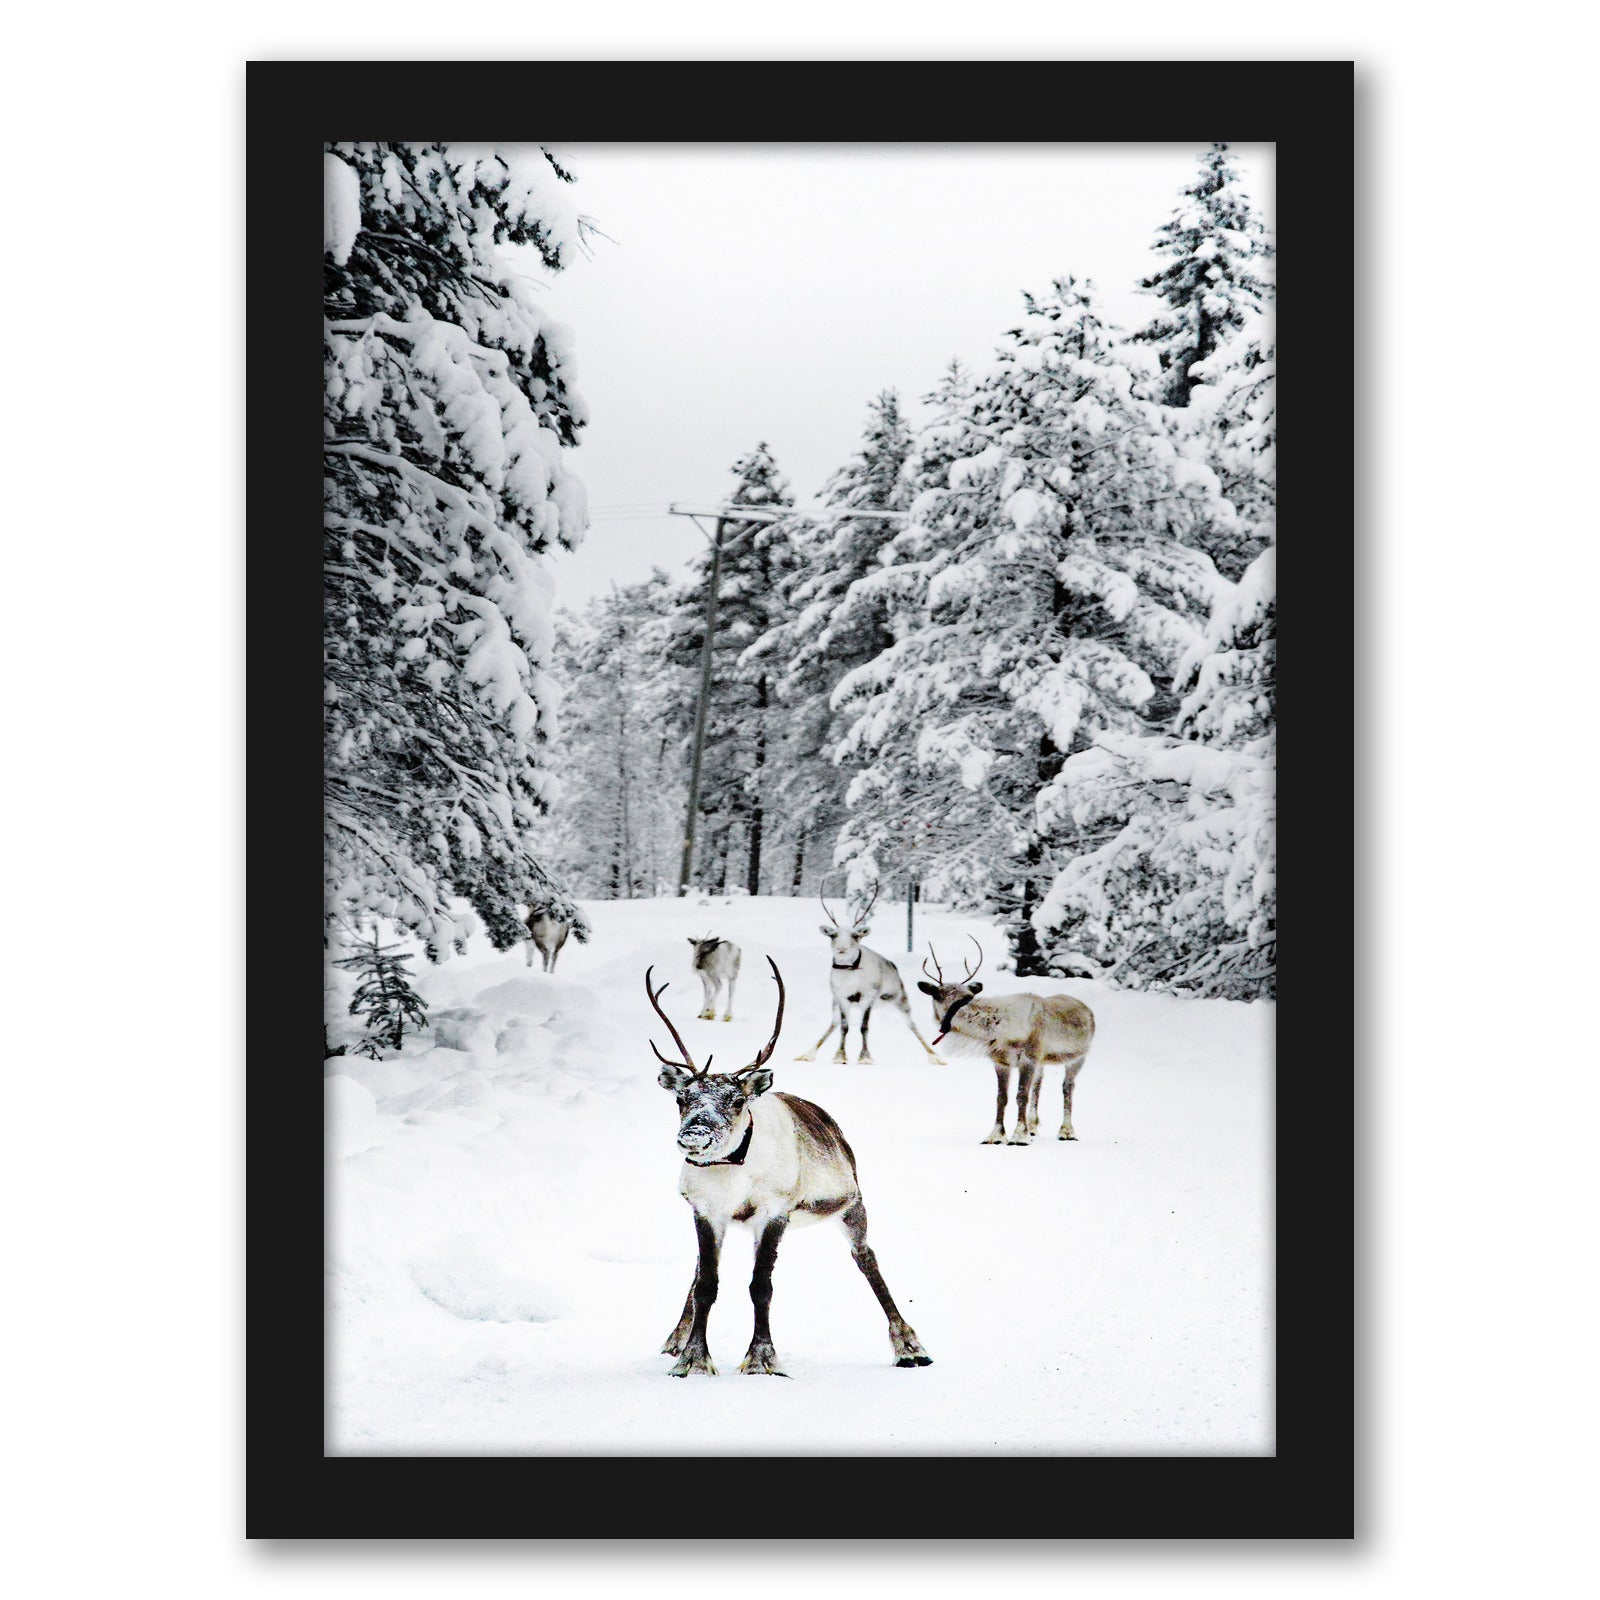 Nature Photo With Moose by Tanya Shumkina - Black Framed Print - Wall Art - Americanflat